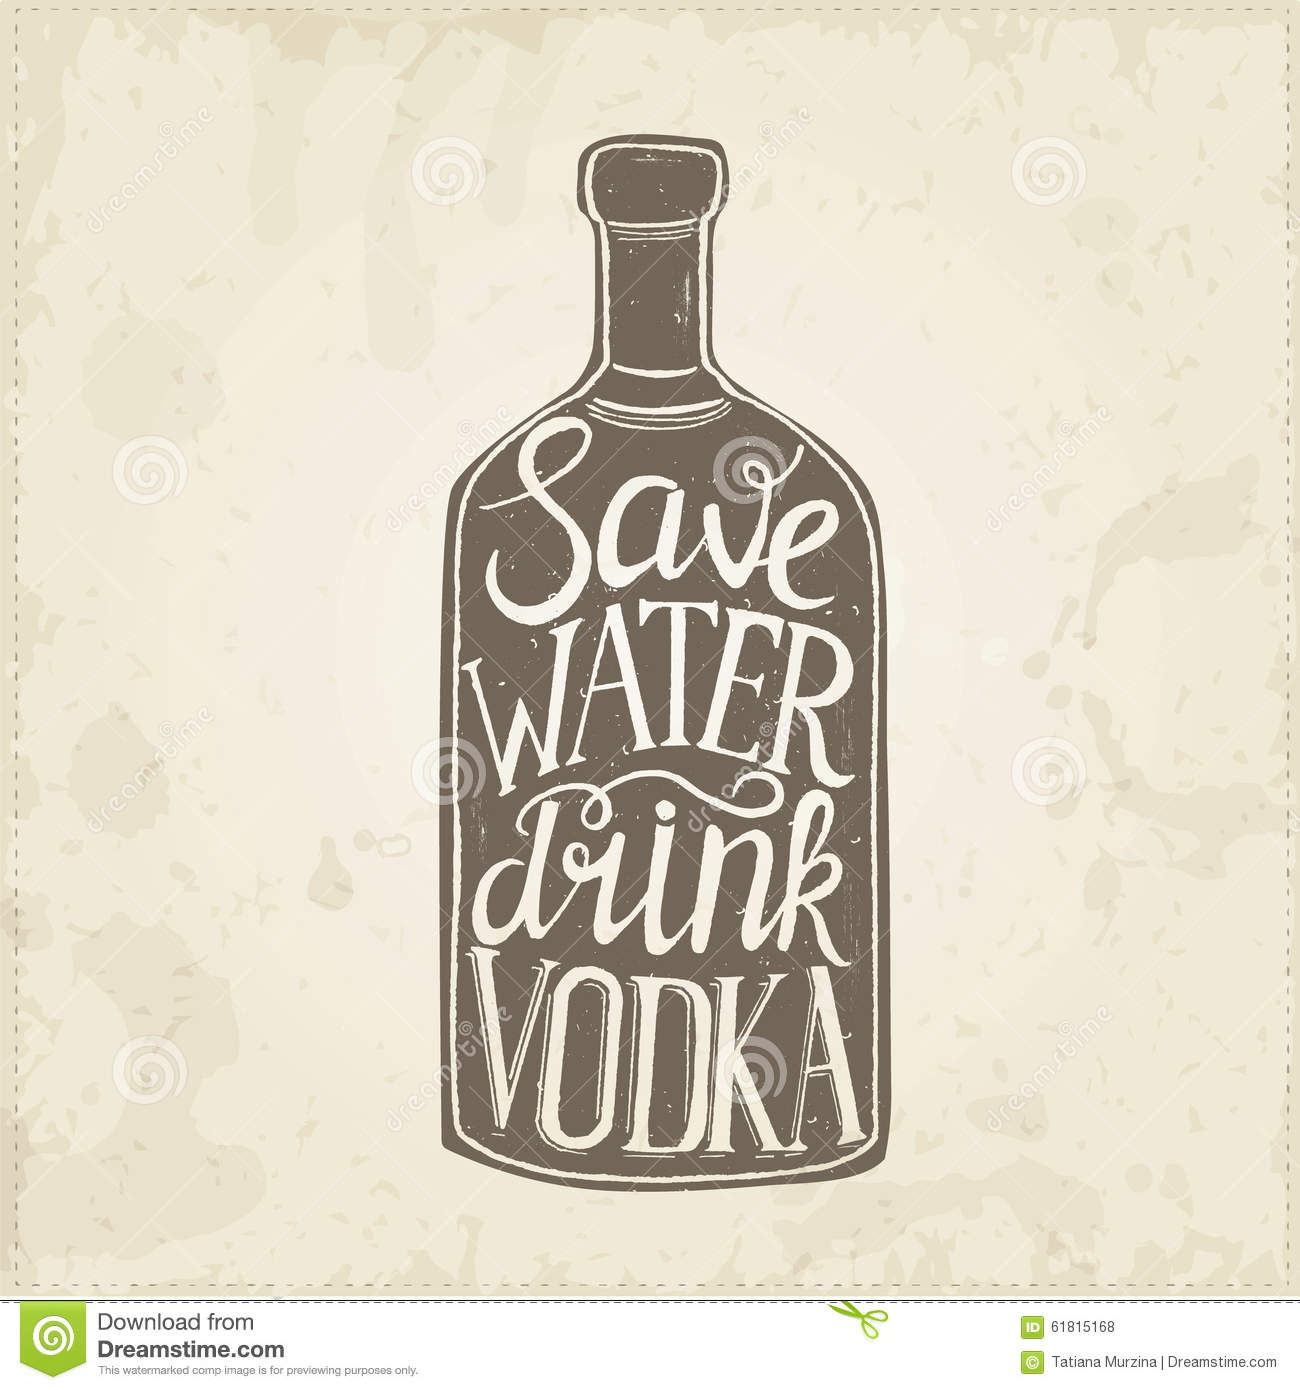 Poster design on save water - Conceptual Handwritten Phrase Save Water Drink Wine